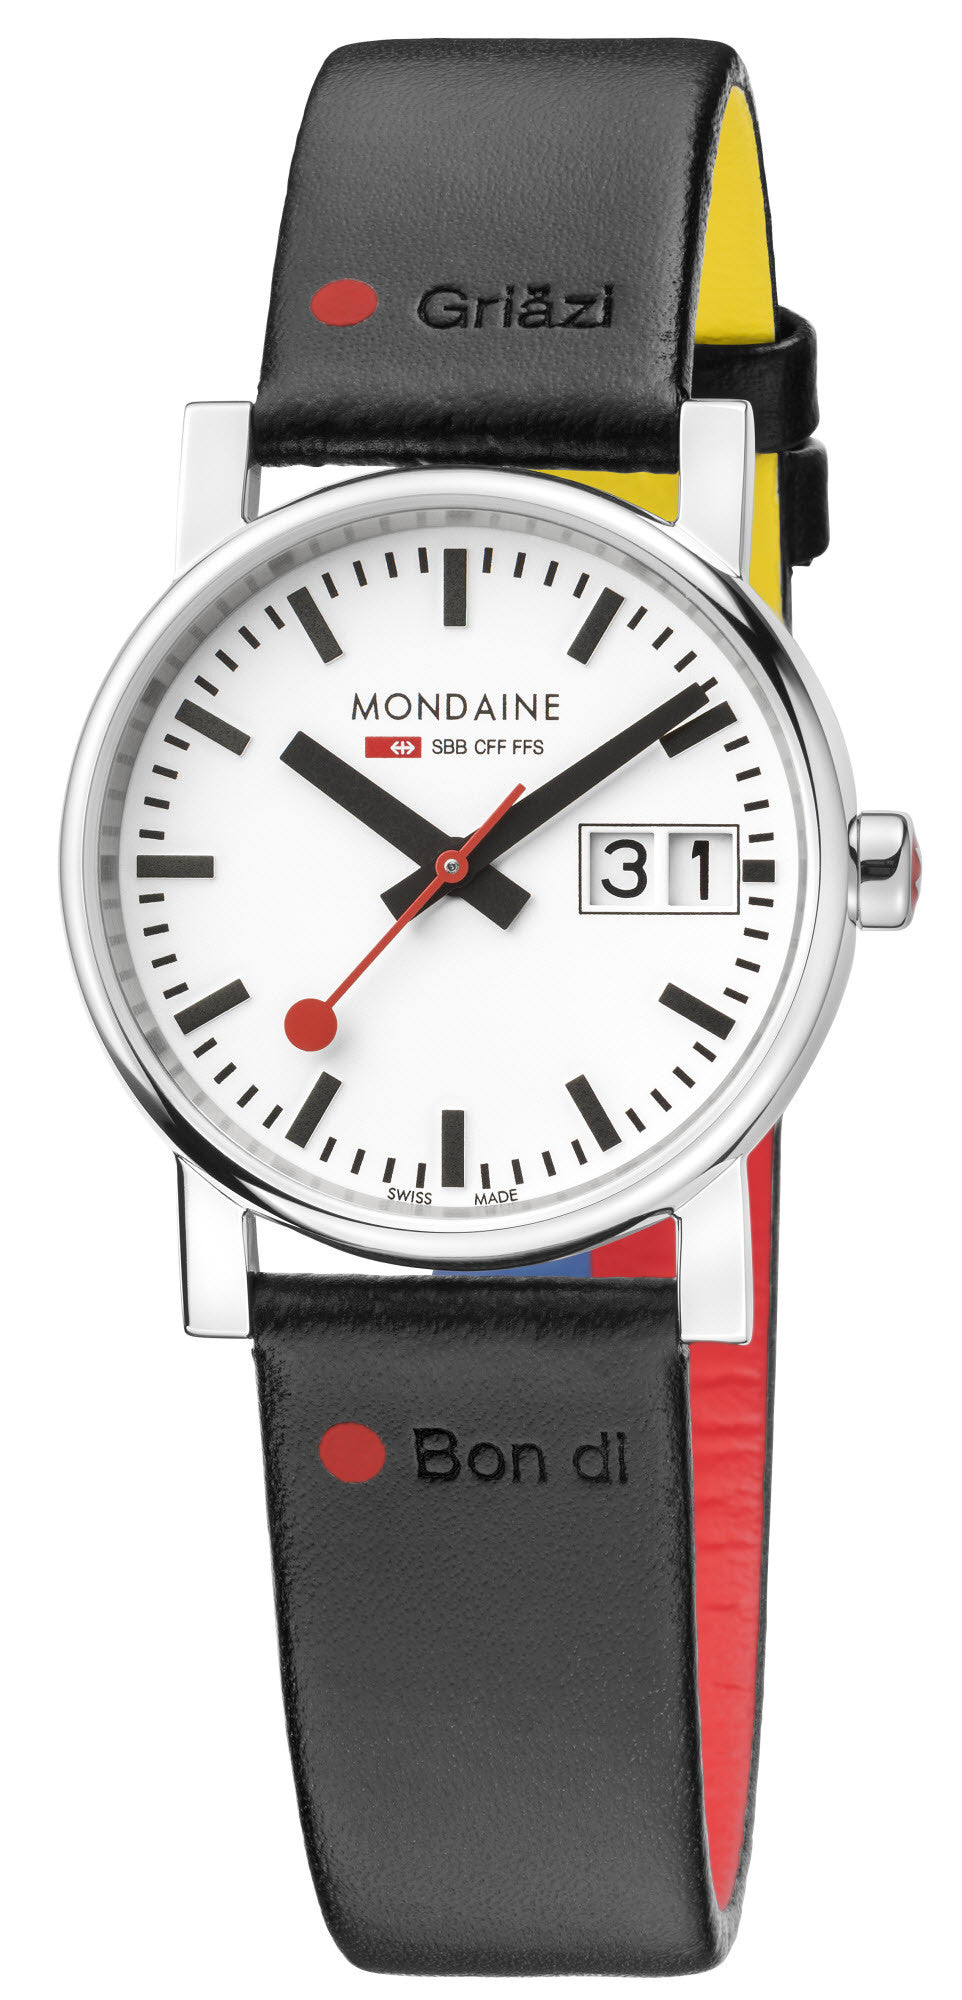 Mondaine Watch SBB Nord Sud